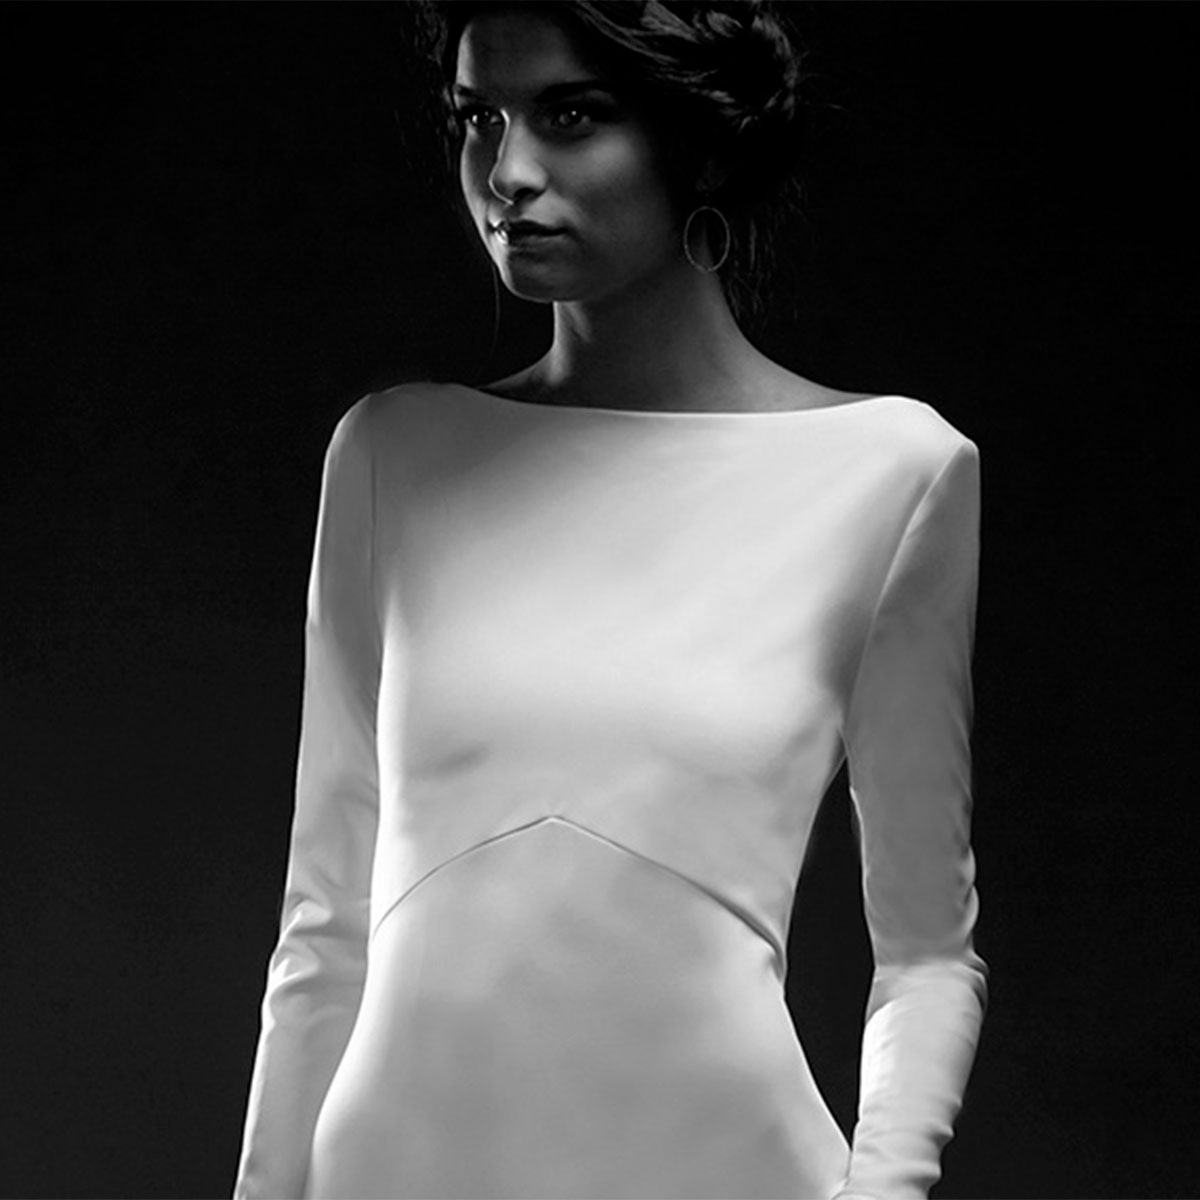 Erin wedding dress designed by rikke gudnitz, Gudnitz Copenhagen